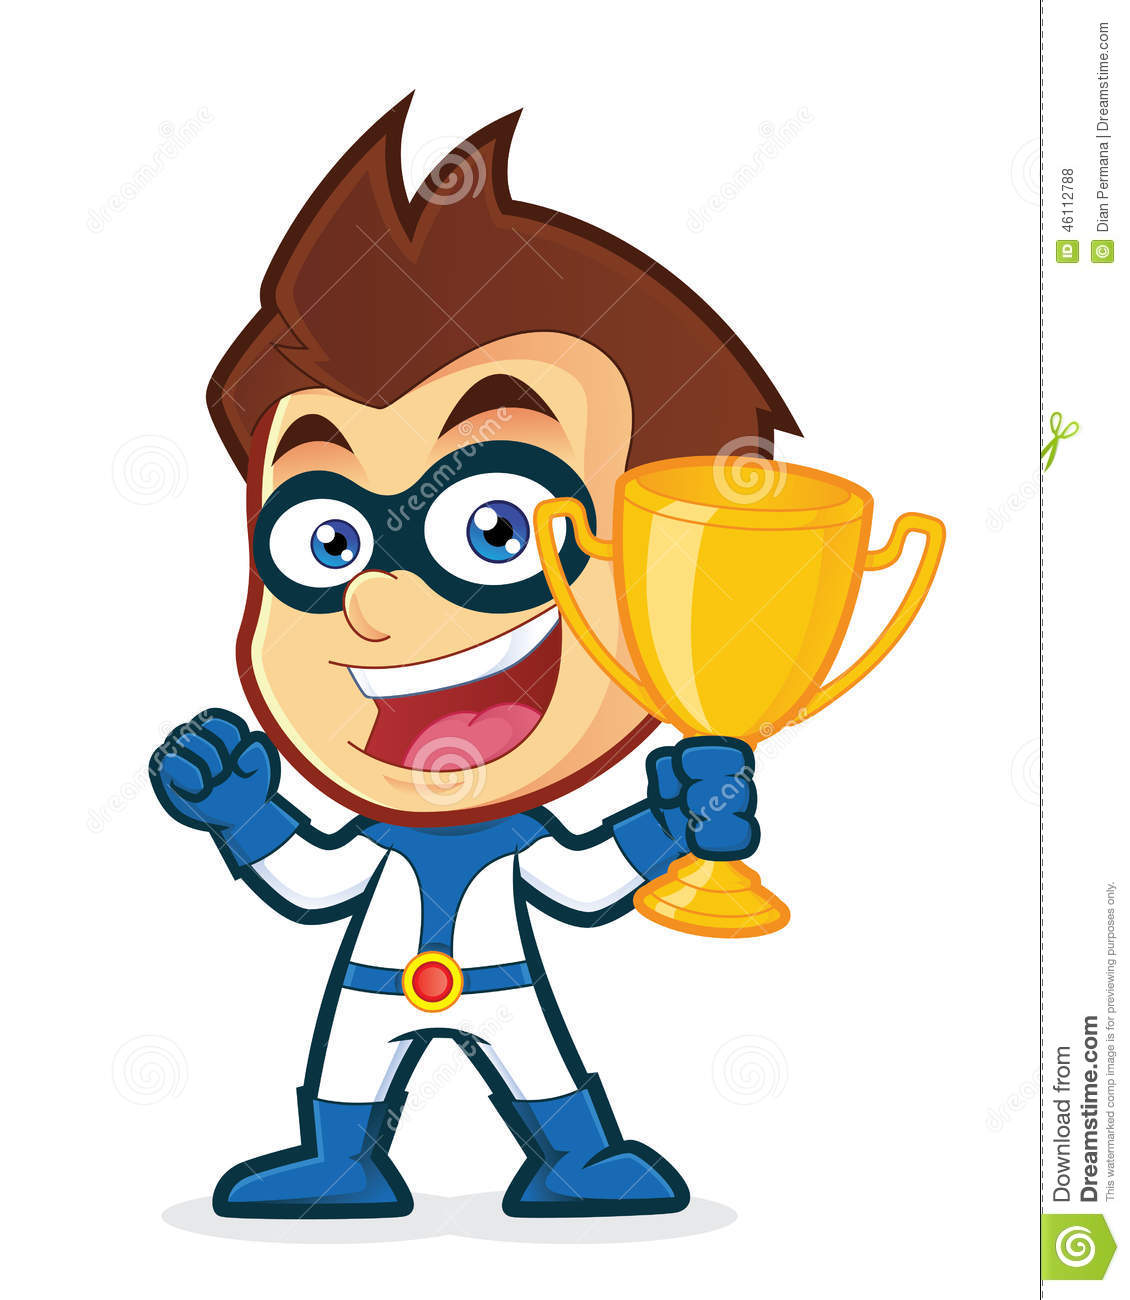 Superhero Holding A Trophy Cup Stock Vector - Image: 46112788